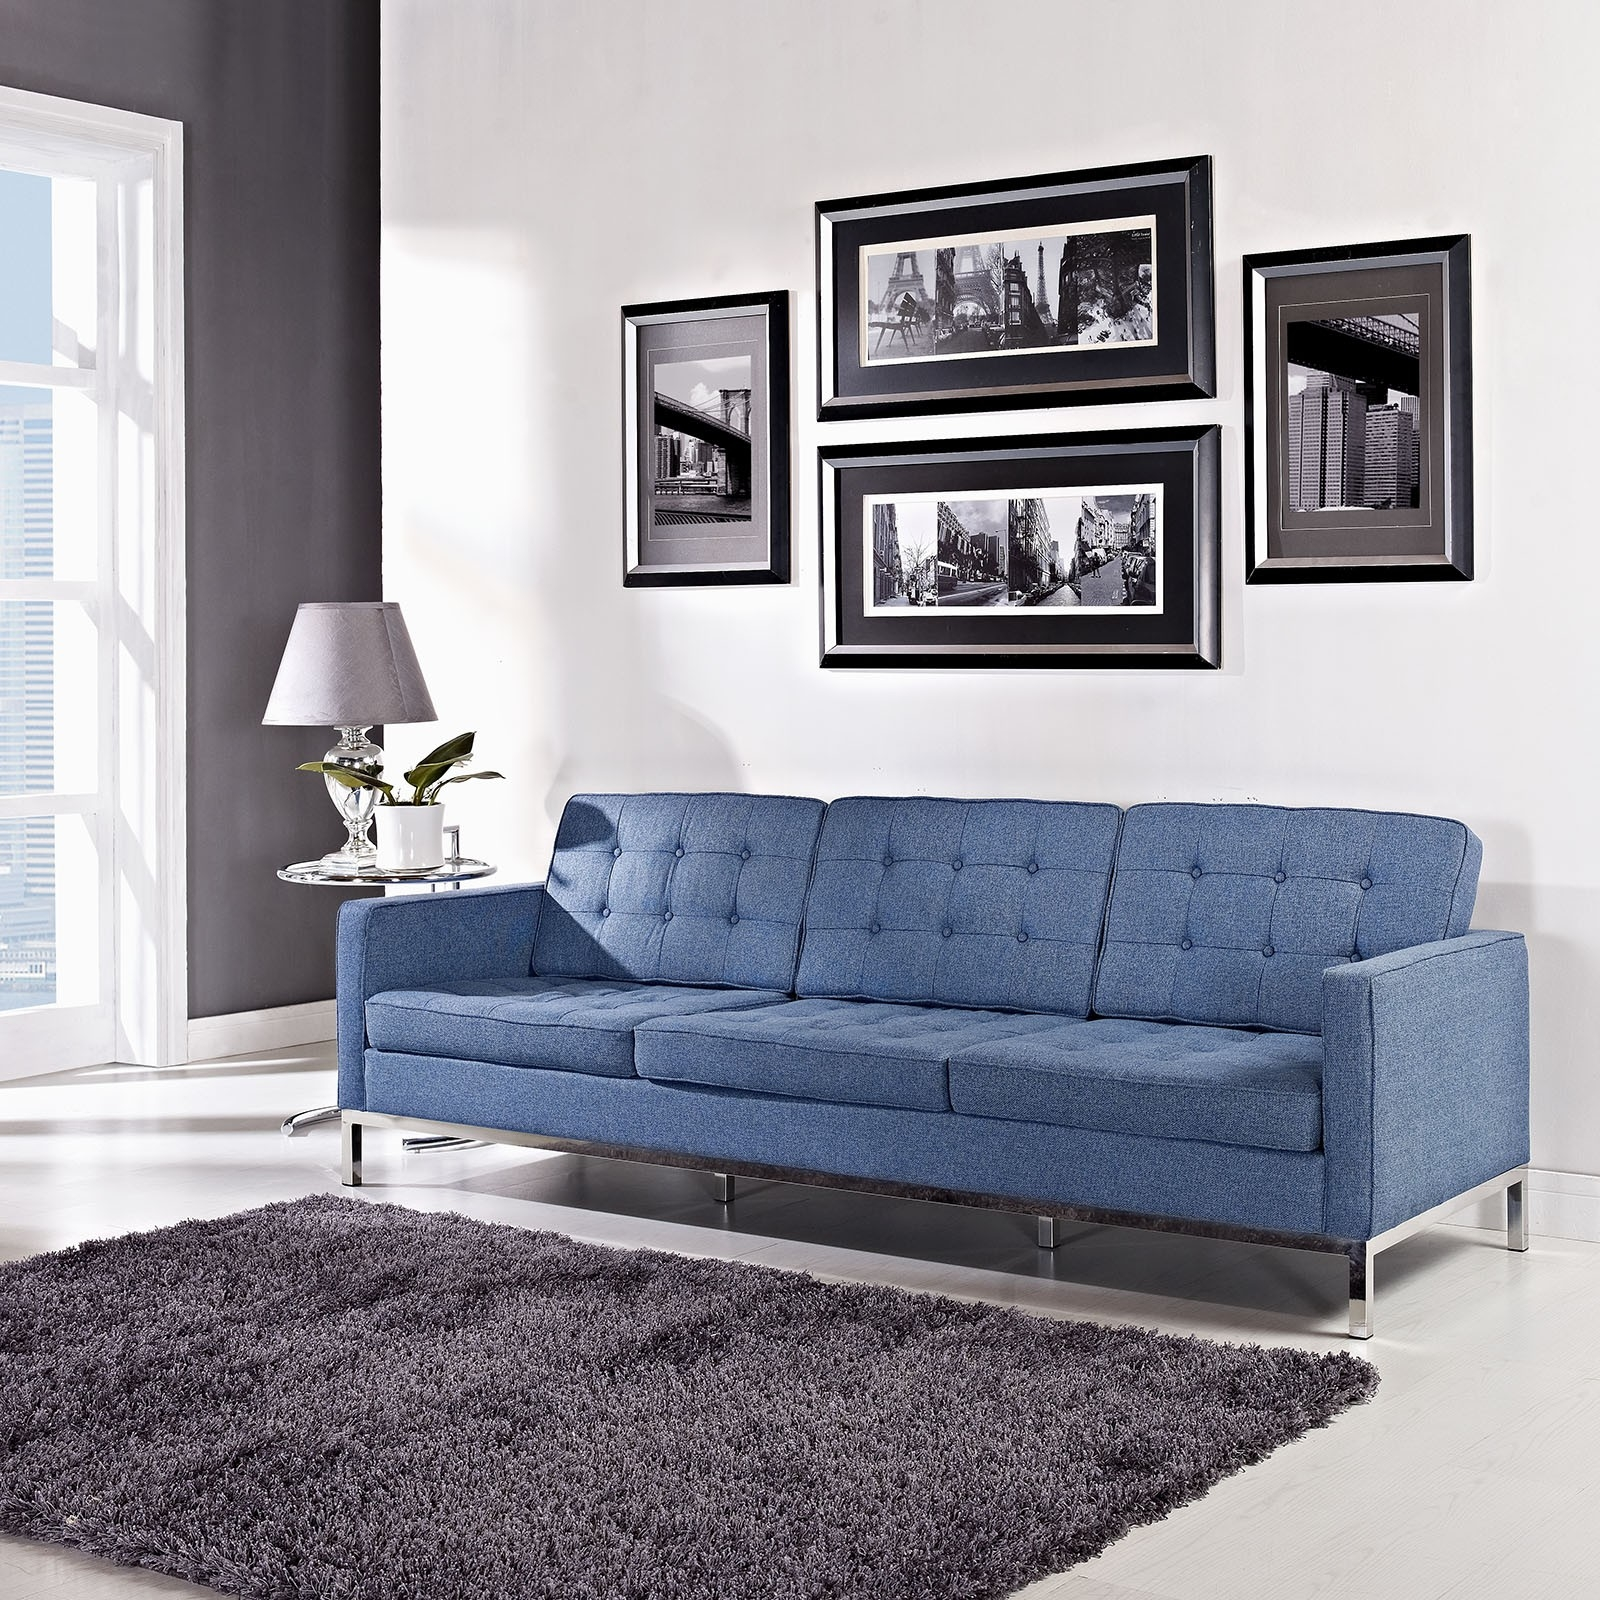 Sofas Center Florence Knoll Sofa Comfort Chaise Reproduction Regarding Florence Medium Sofas (Image 15 of 15)